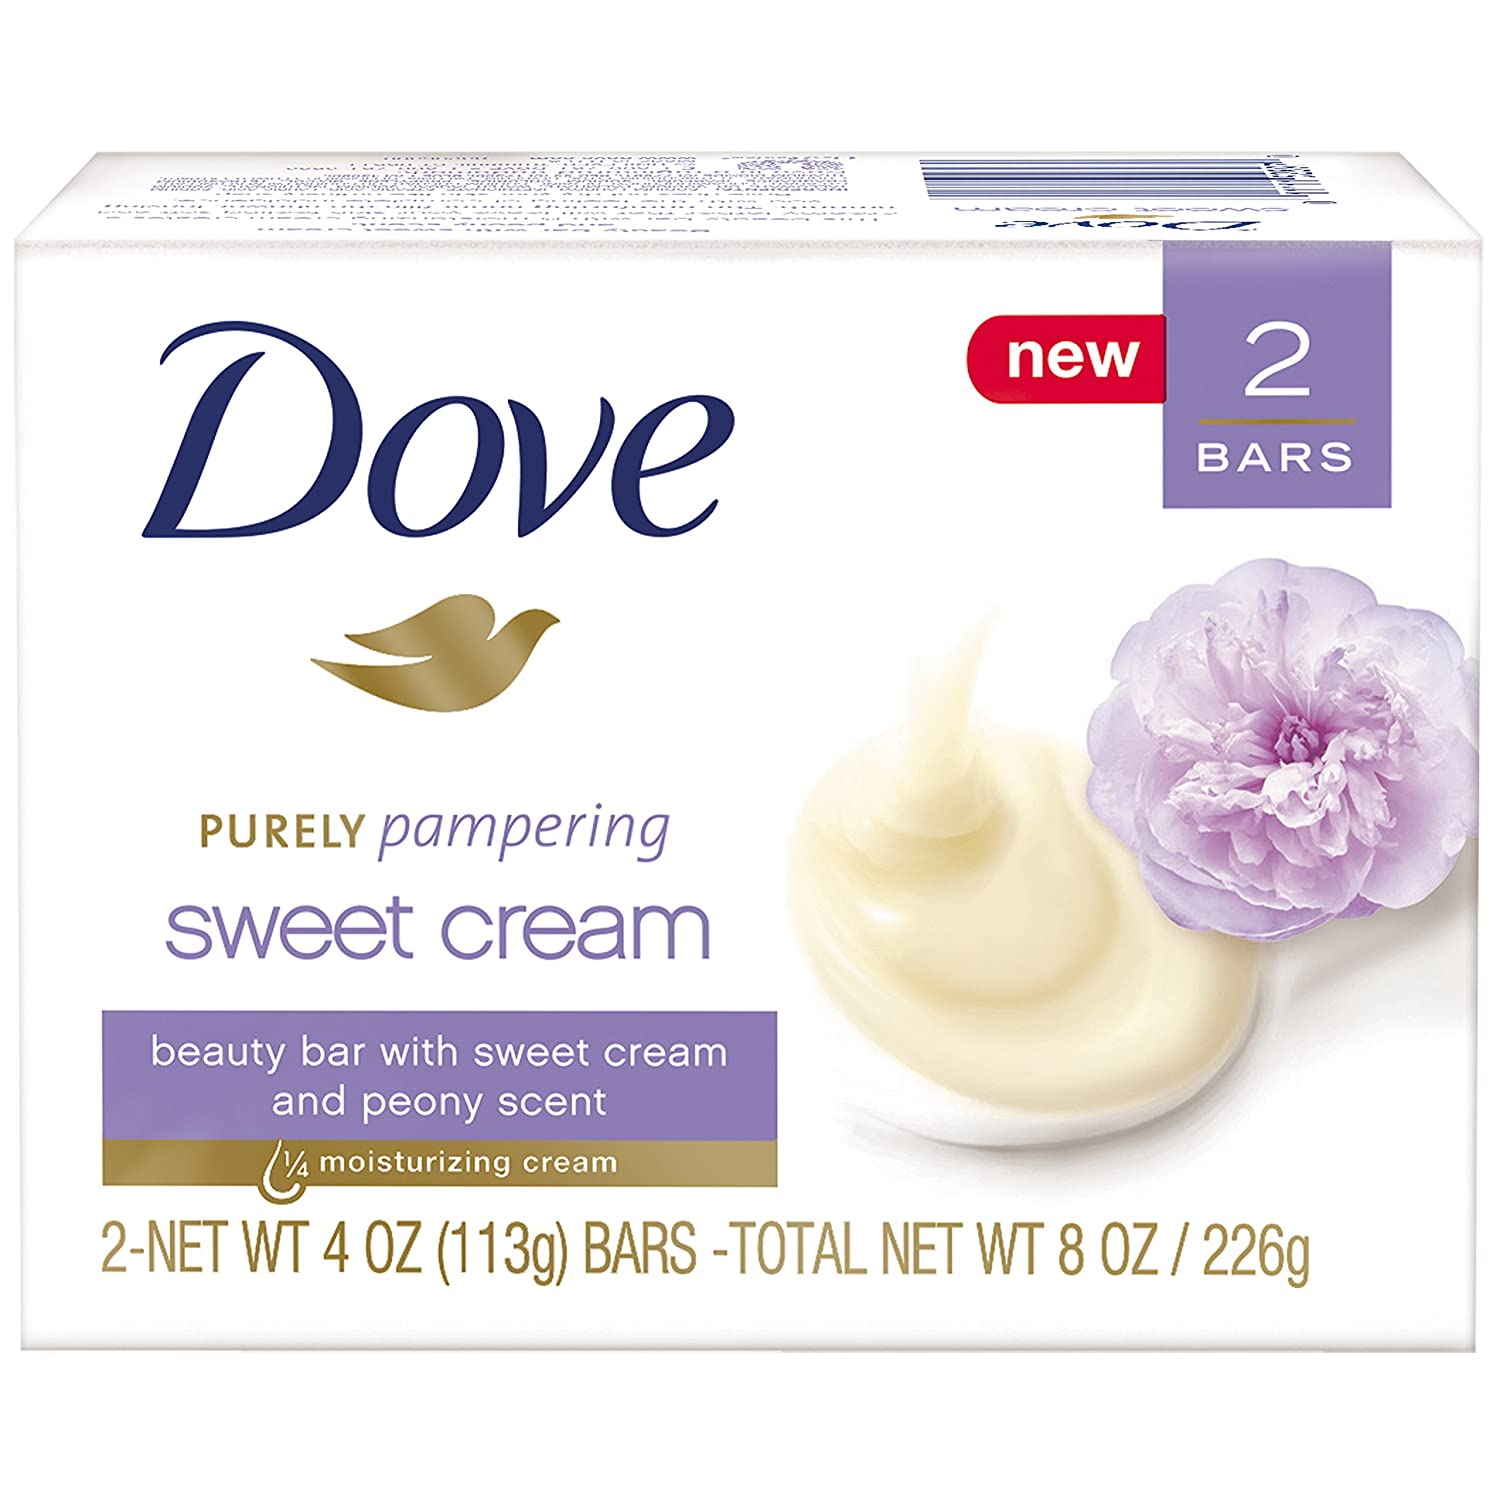 Dove Purely Pampering Beauty Bar Sweet Cream & Peony 4 oz, 2 Bar